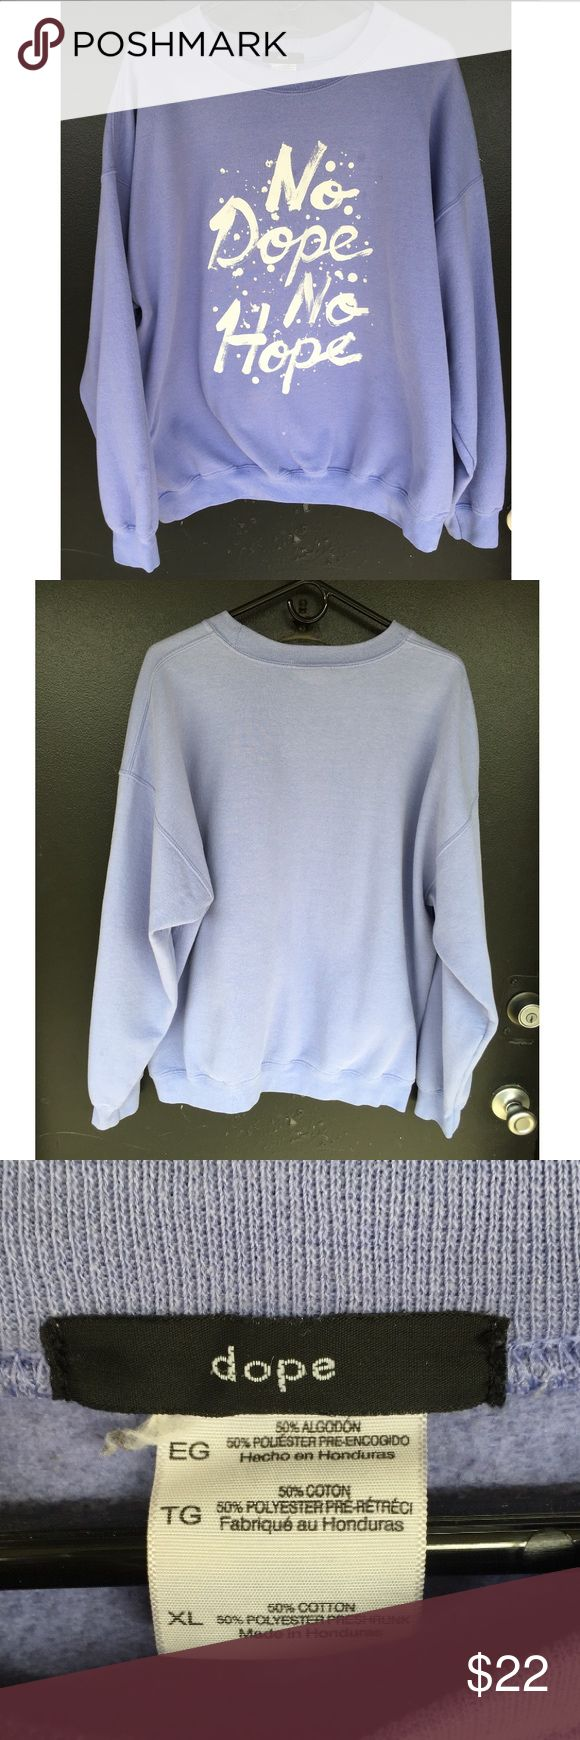 DOPE CREW. No dope. No hope. Purple sweatshirt. Great condition. Preowned and loved. ALL OFFERS CONSIDERED. dope Sweaters Crewneck